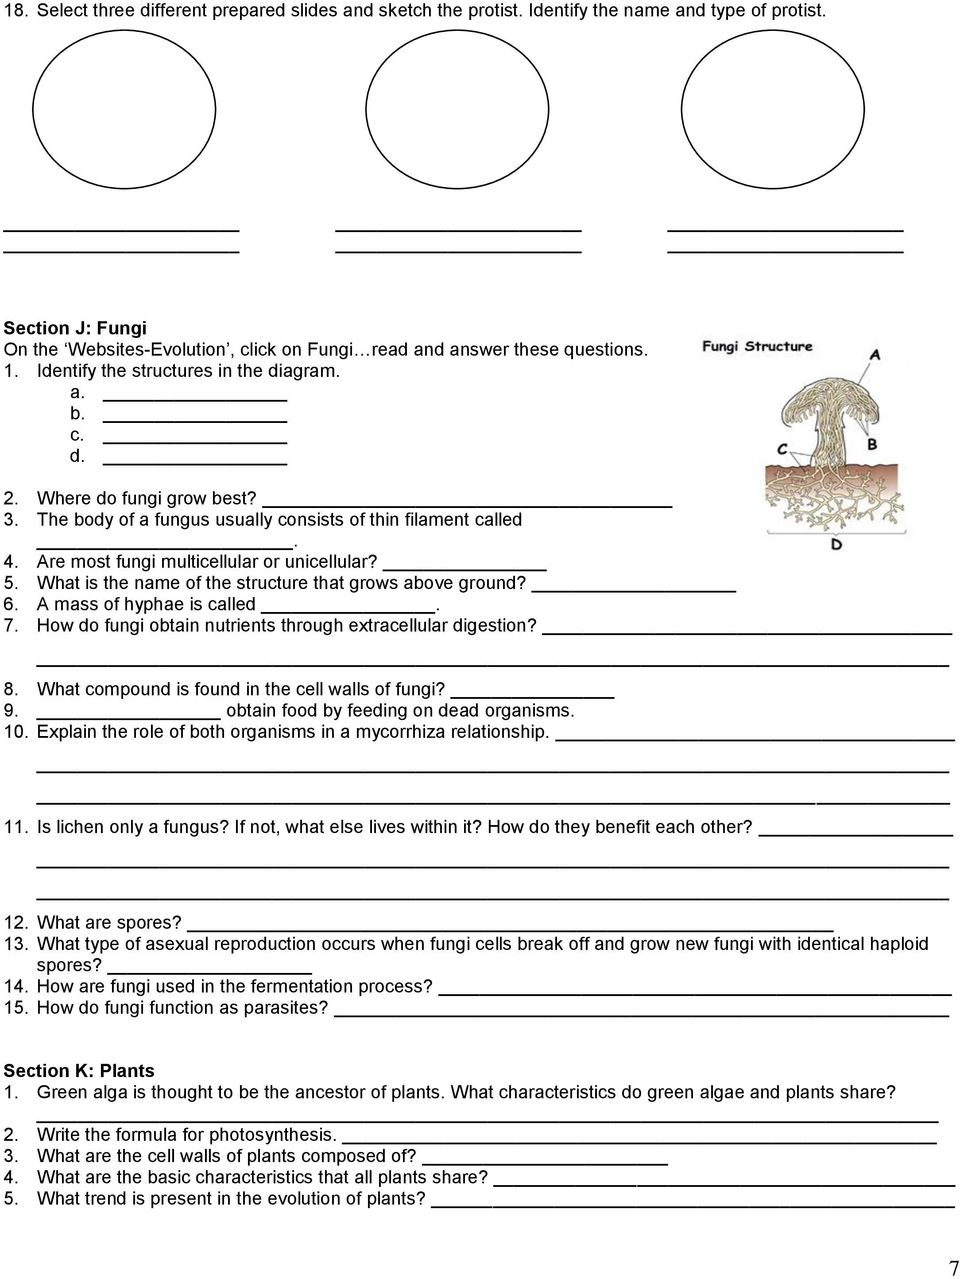 hight resolution of Classification \u0026 Kingdoms Worksheet - PDF Free Download